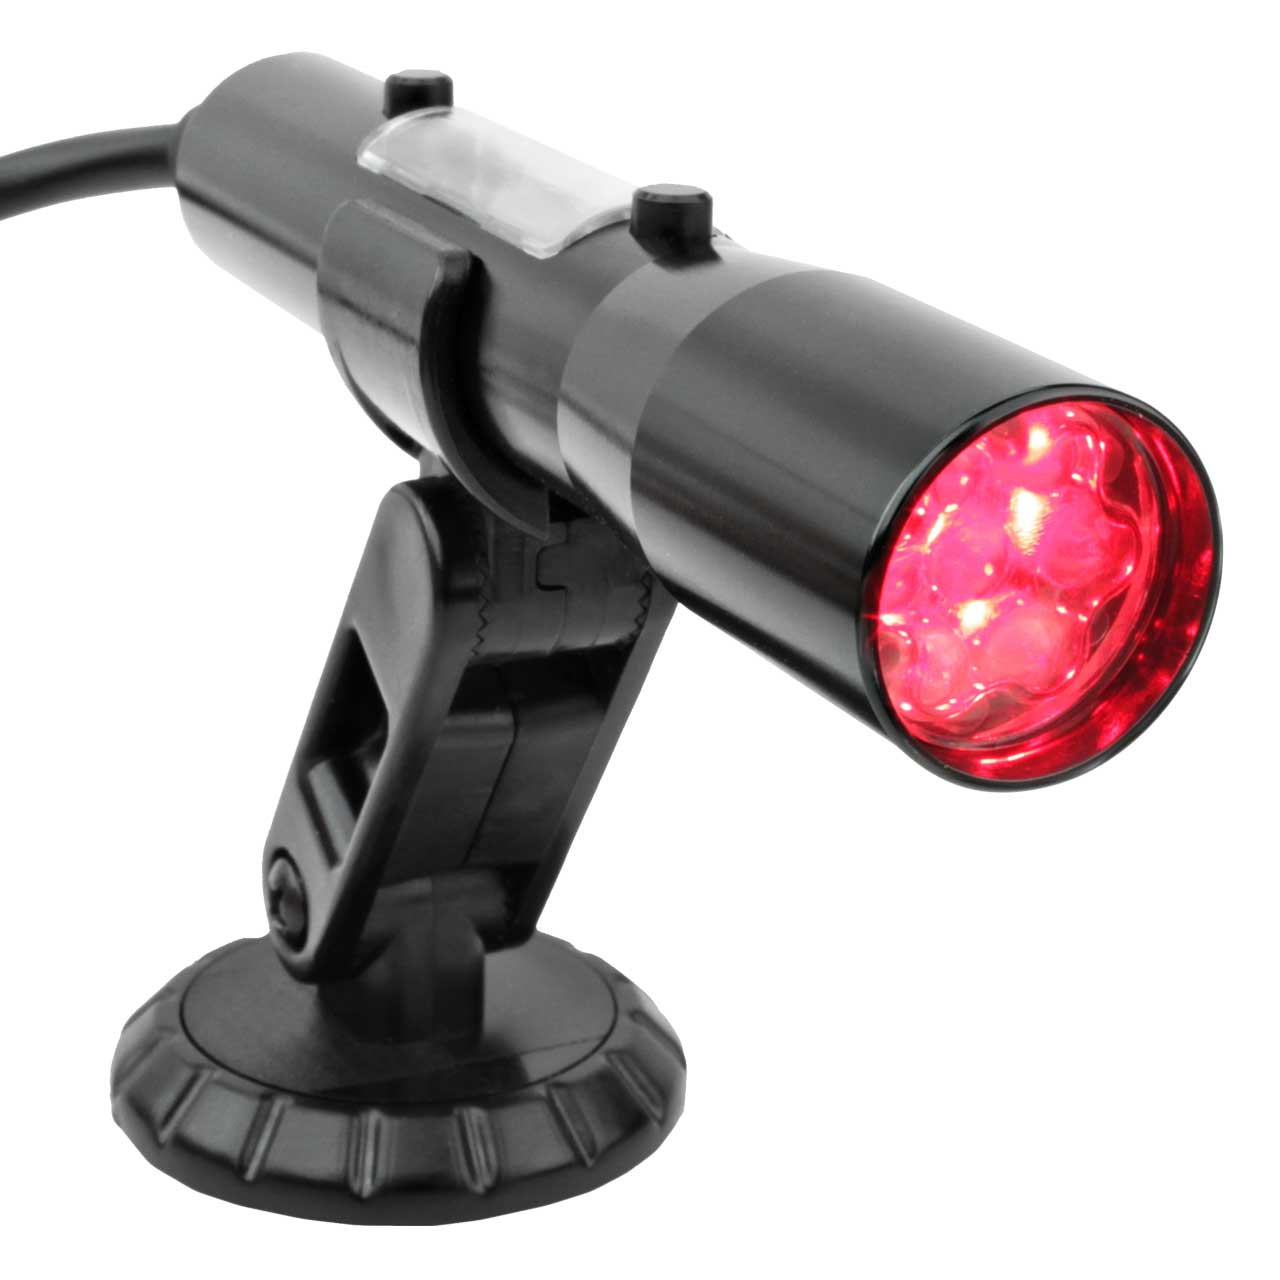 SST-MAX OBDII Shift Light Red LEDs - Black Tube (Compatible with 2008 and newer vehicles)